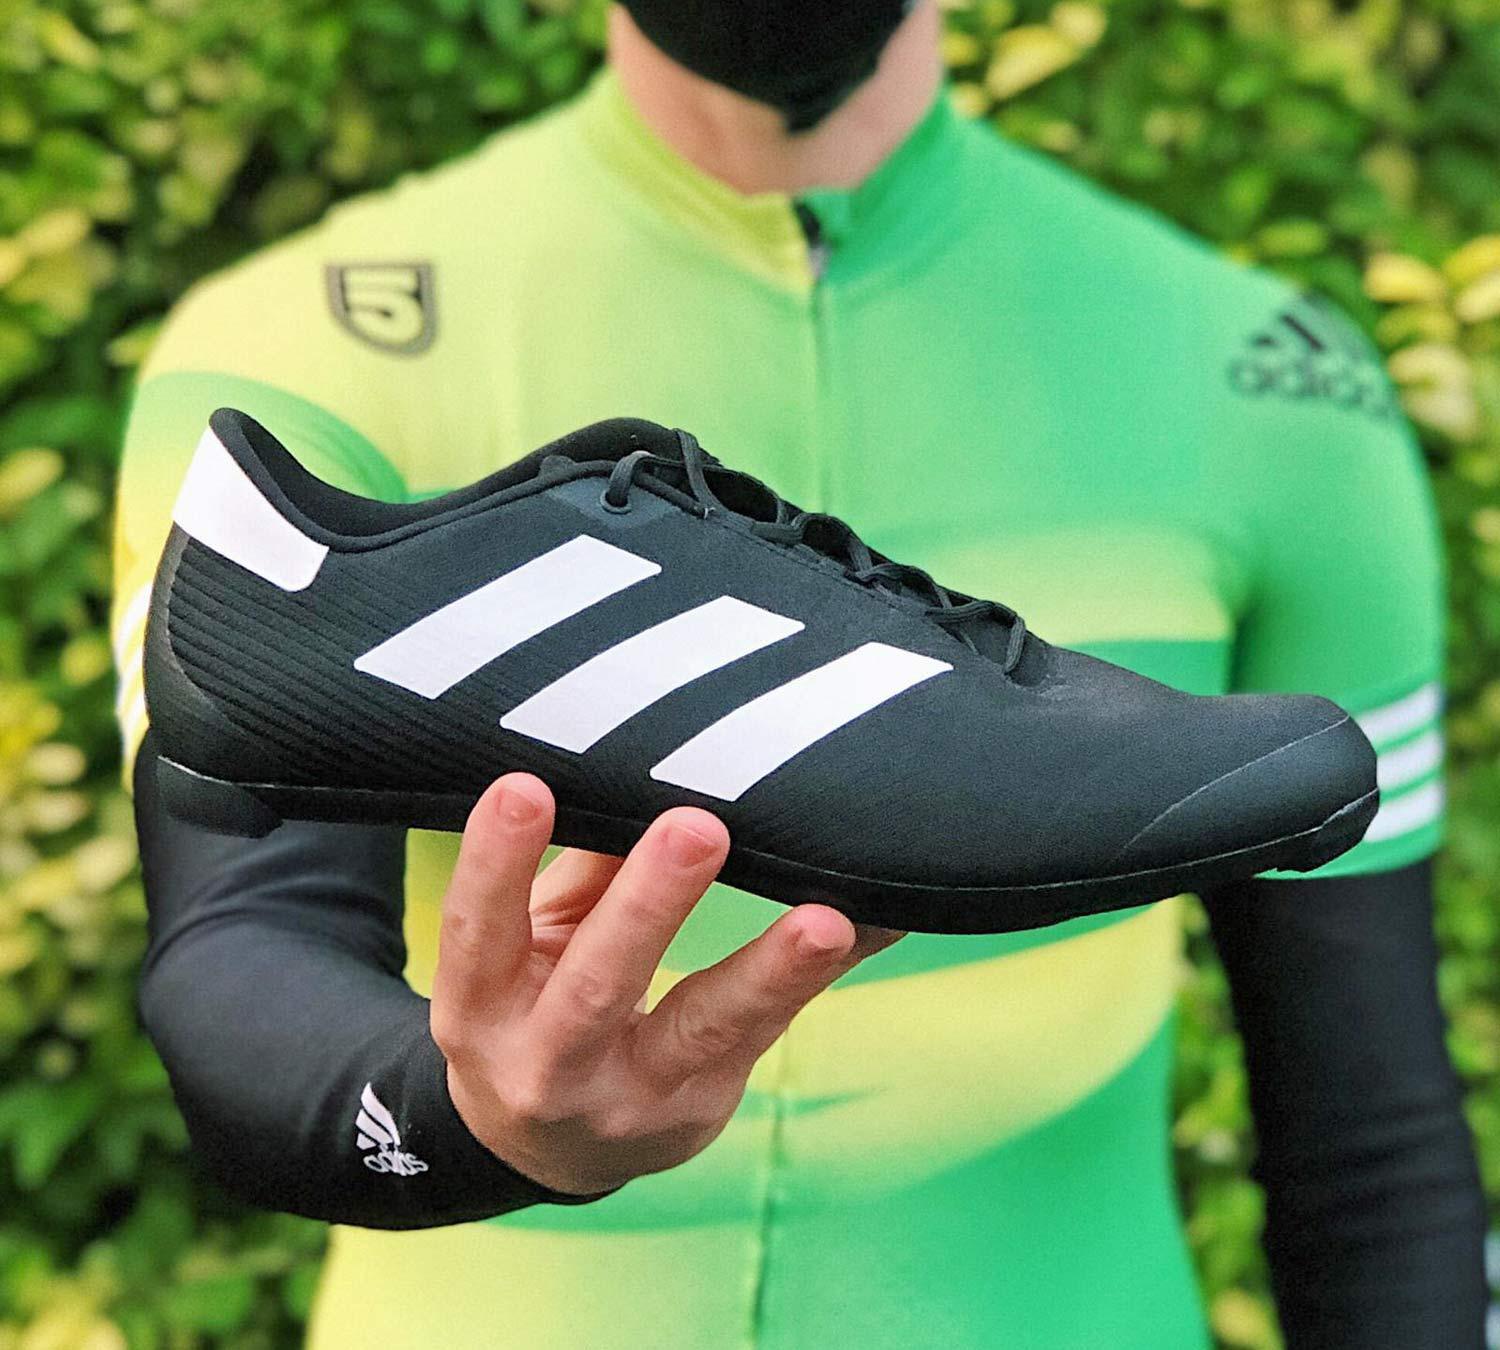 Extranjero crisis abogado  The Road Cycling Shoes by adidas mix classic soccer style & laces with  modern eco materials - Bikerumor